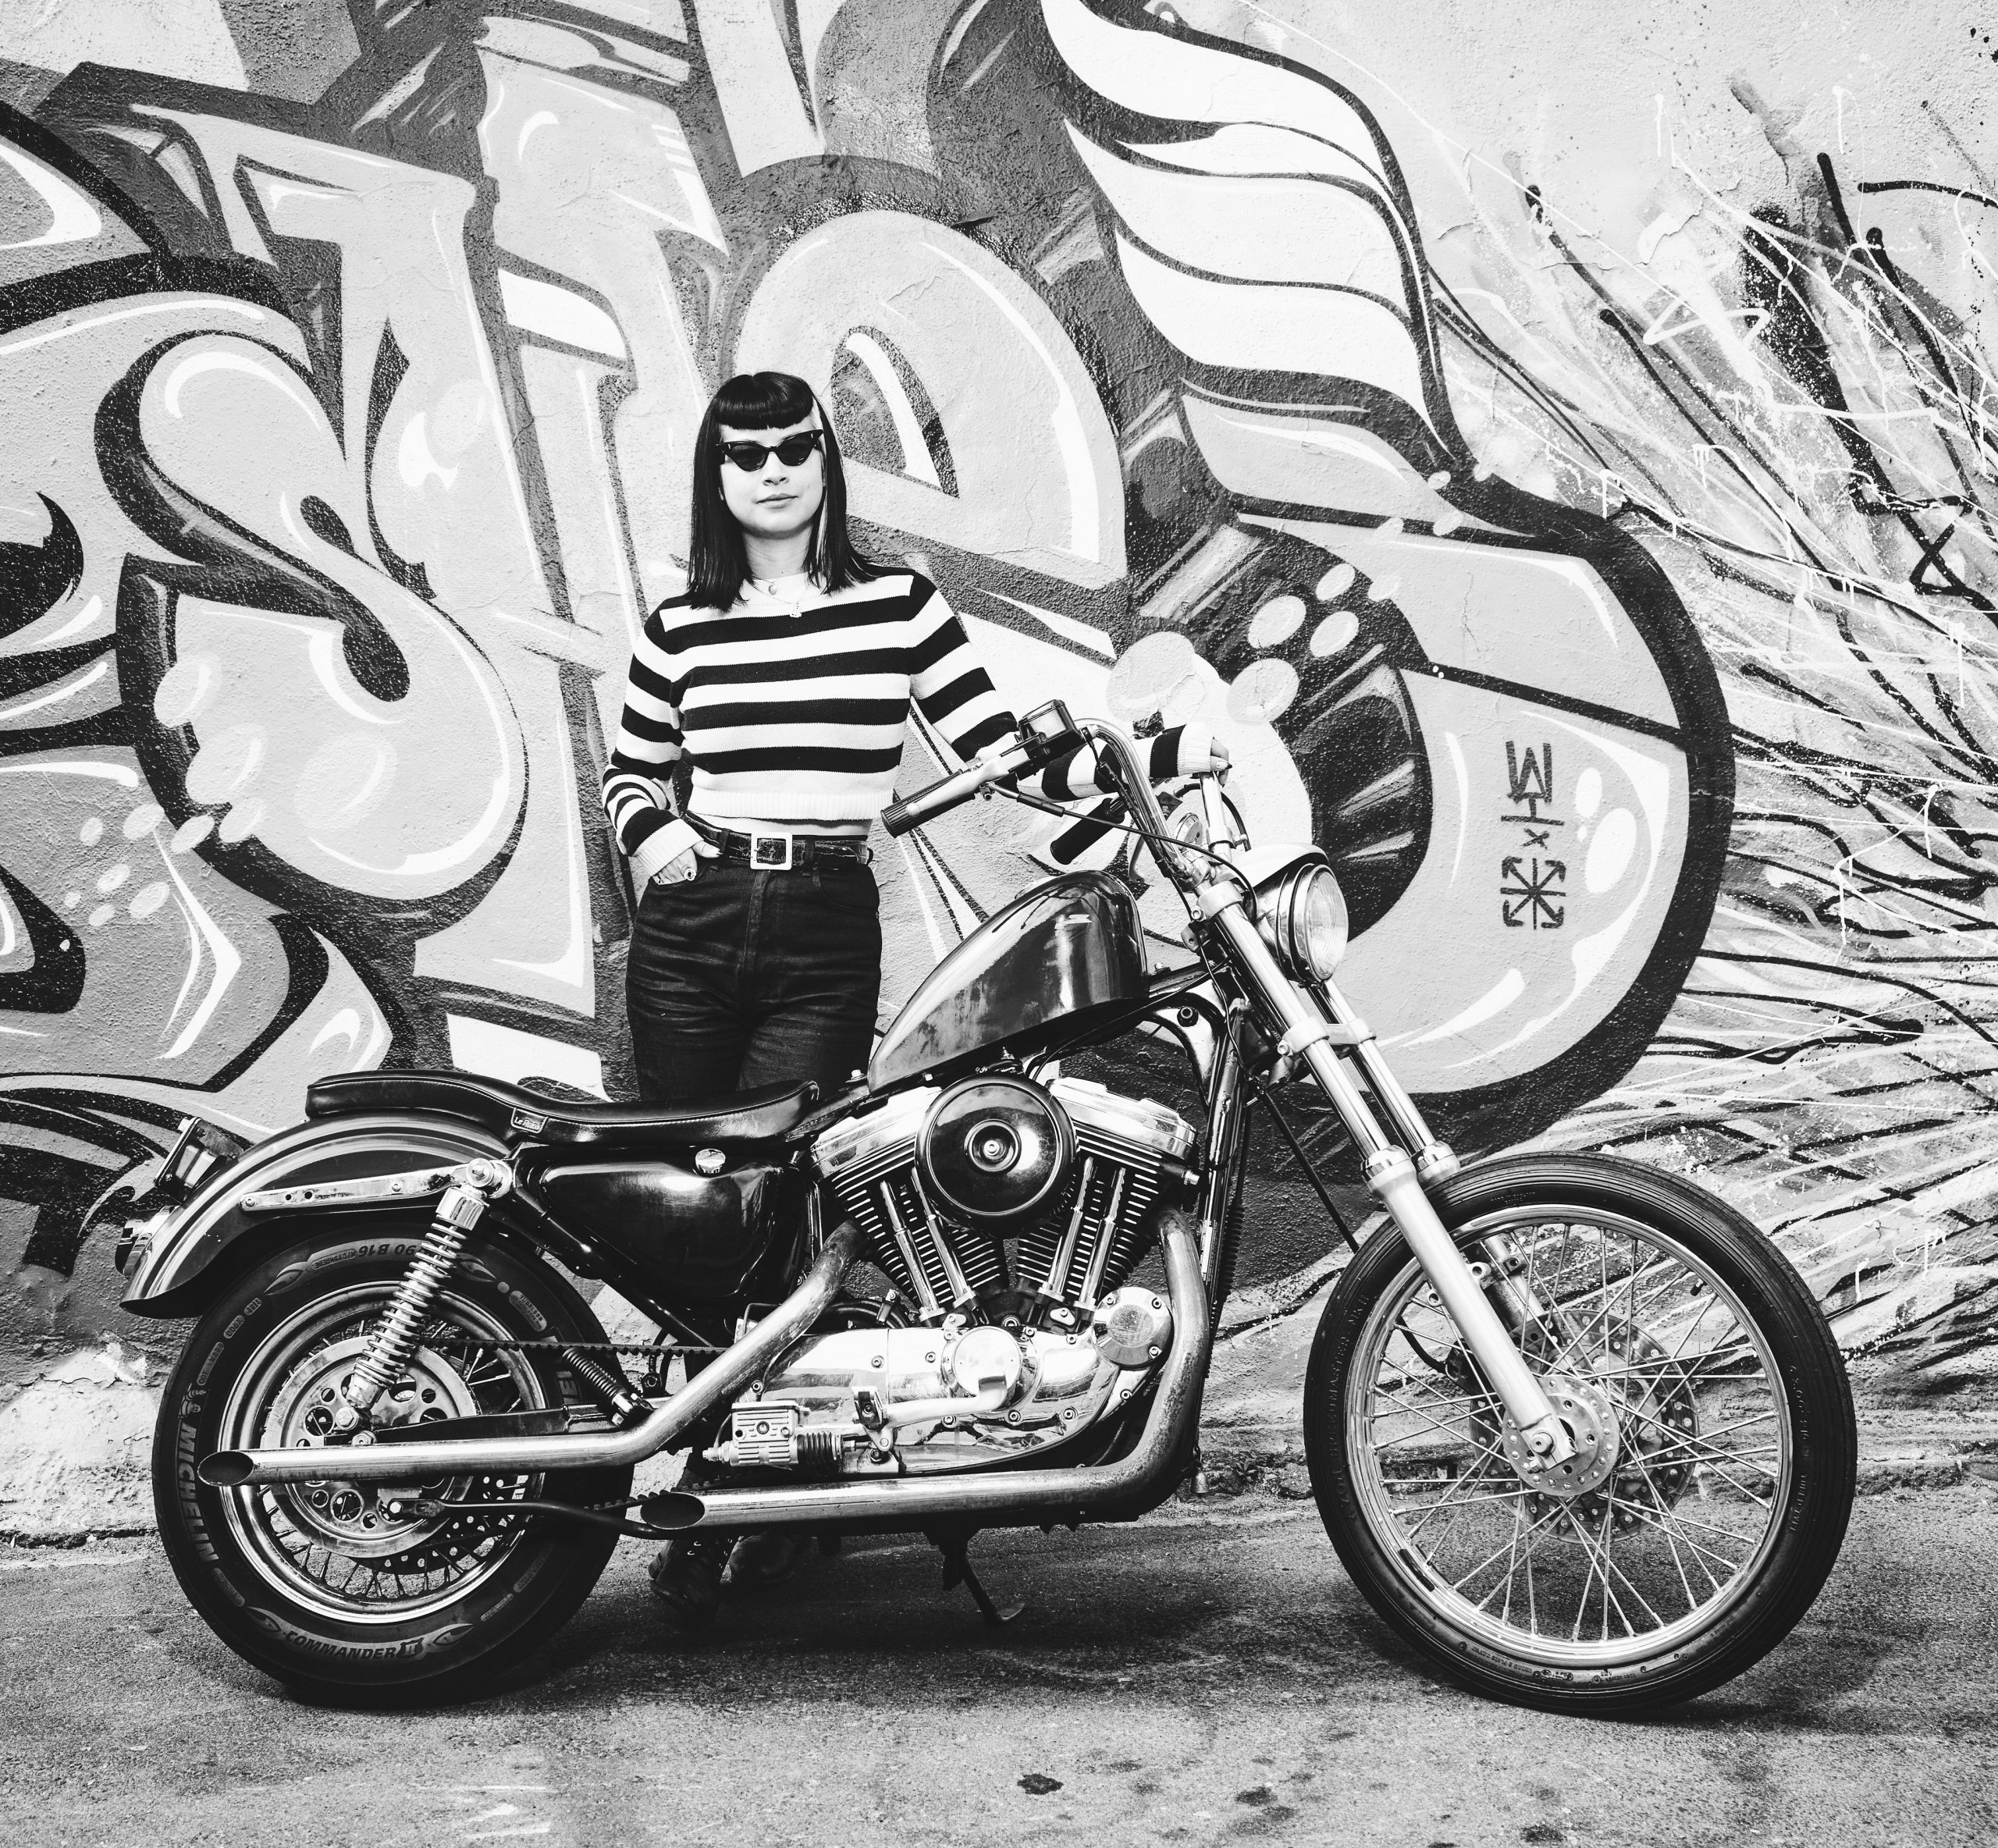 Adri Law – Los Angeles Motorcycle Photographer & Co-Founder of Paradise Road Show